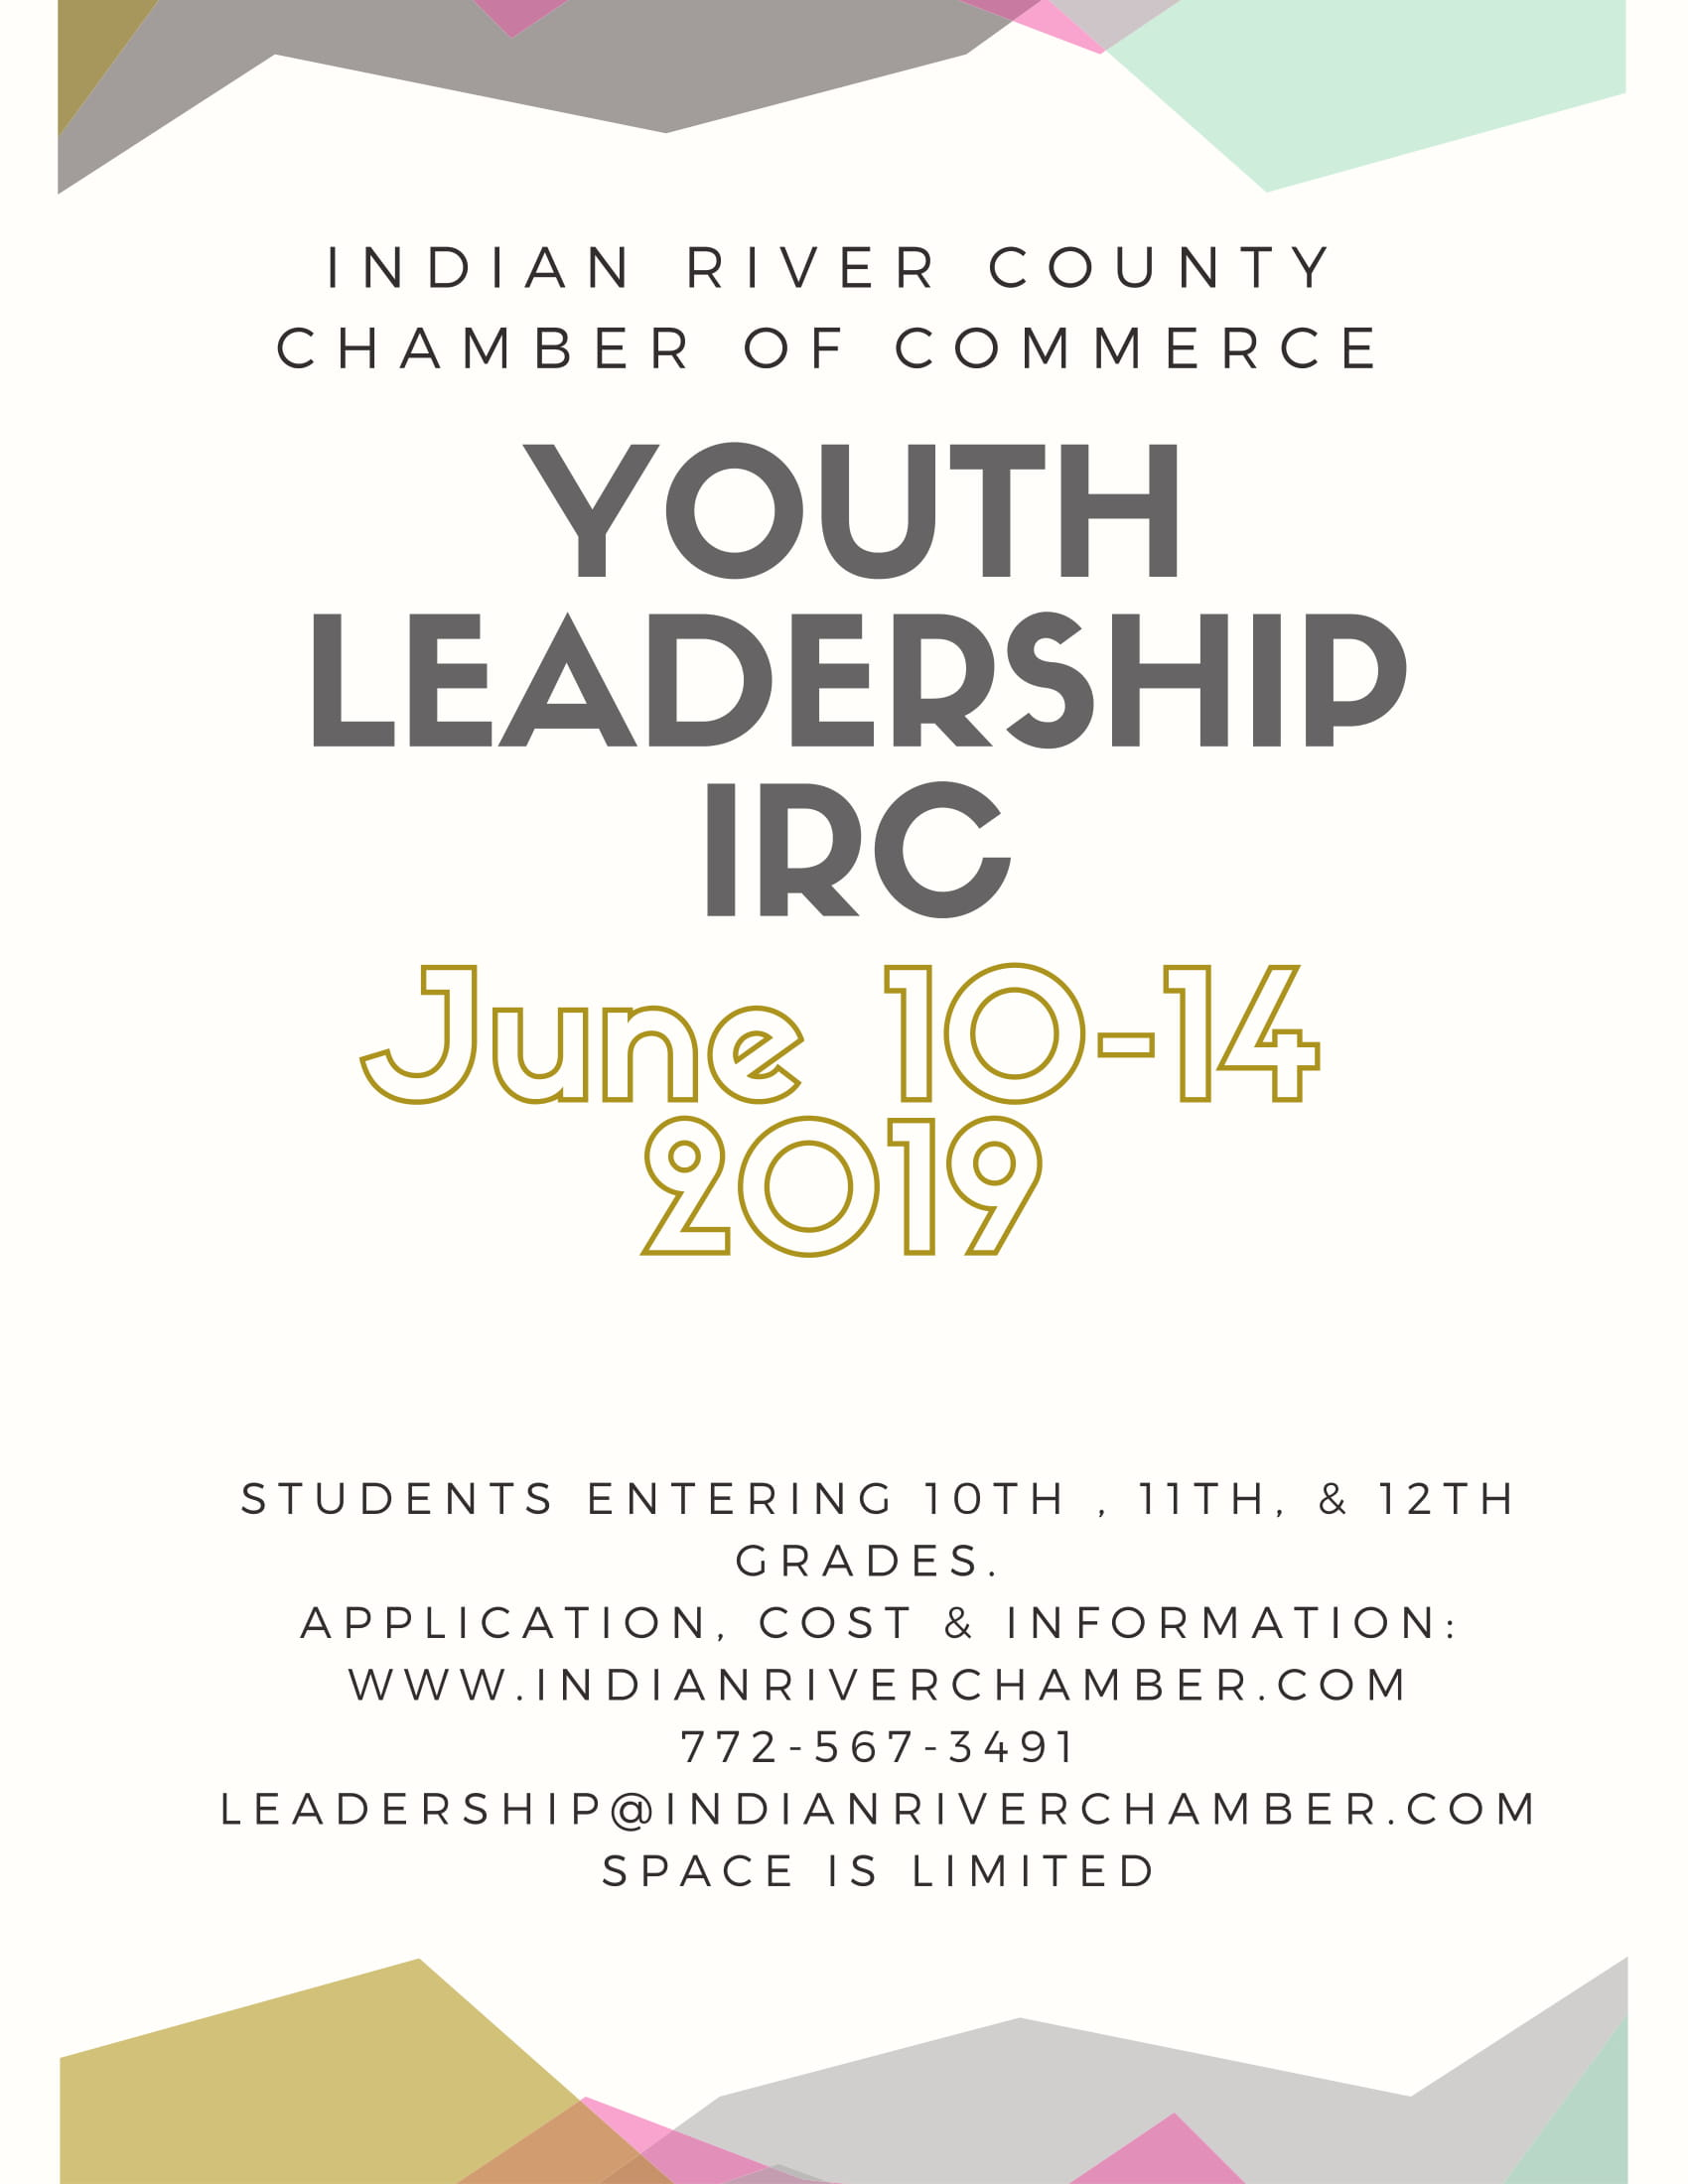 Youth-Leadership-IRC-flyer-2019-1.jpg